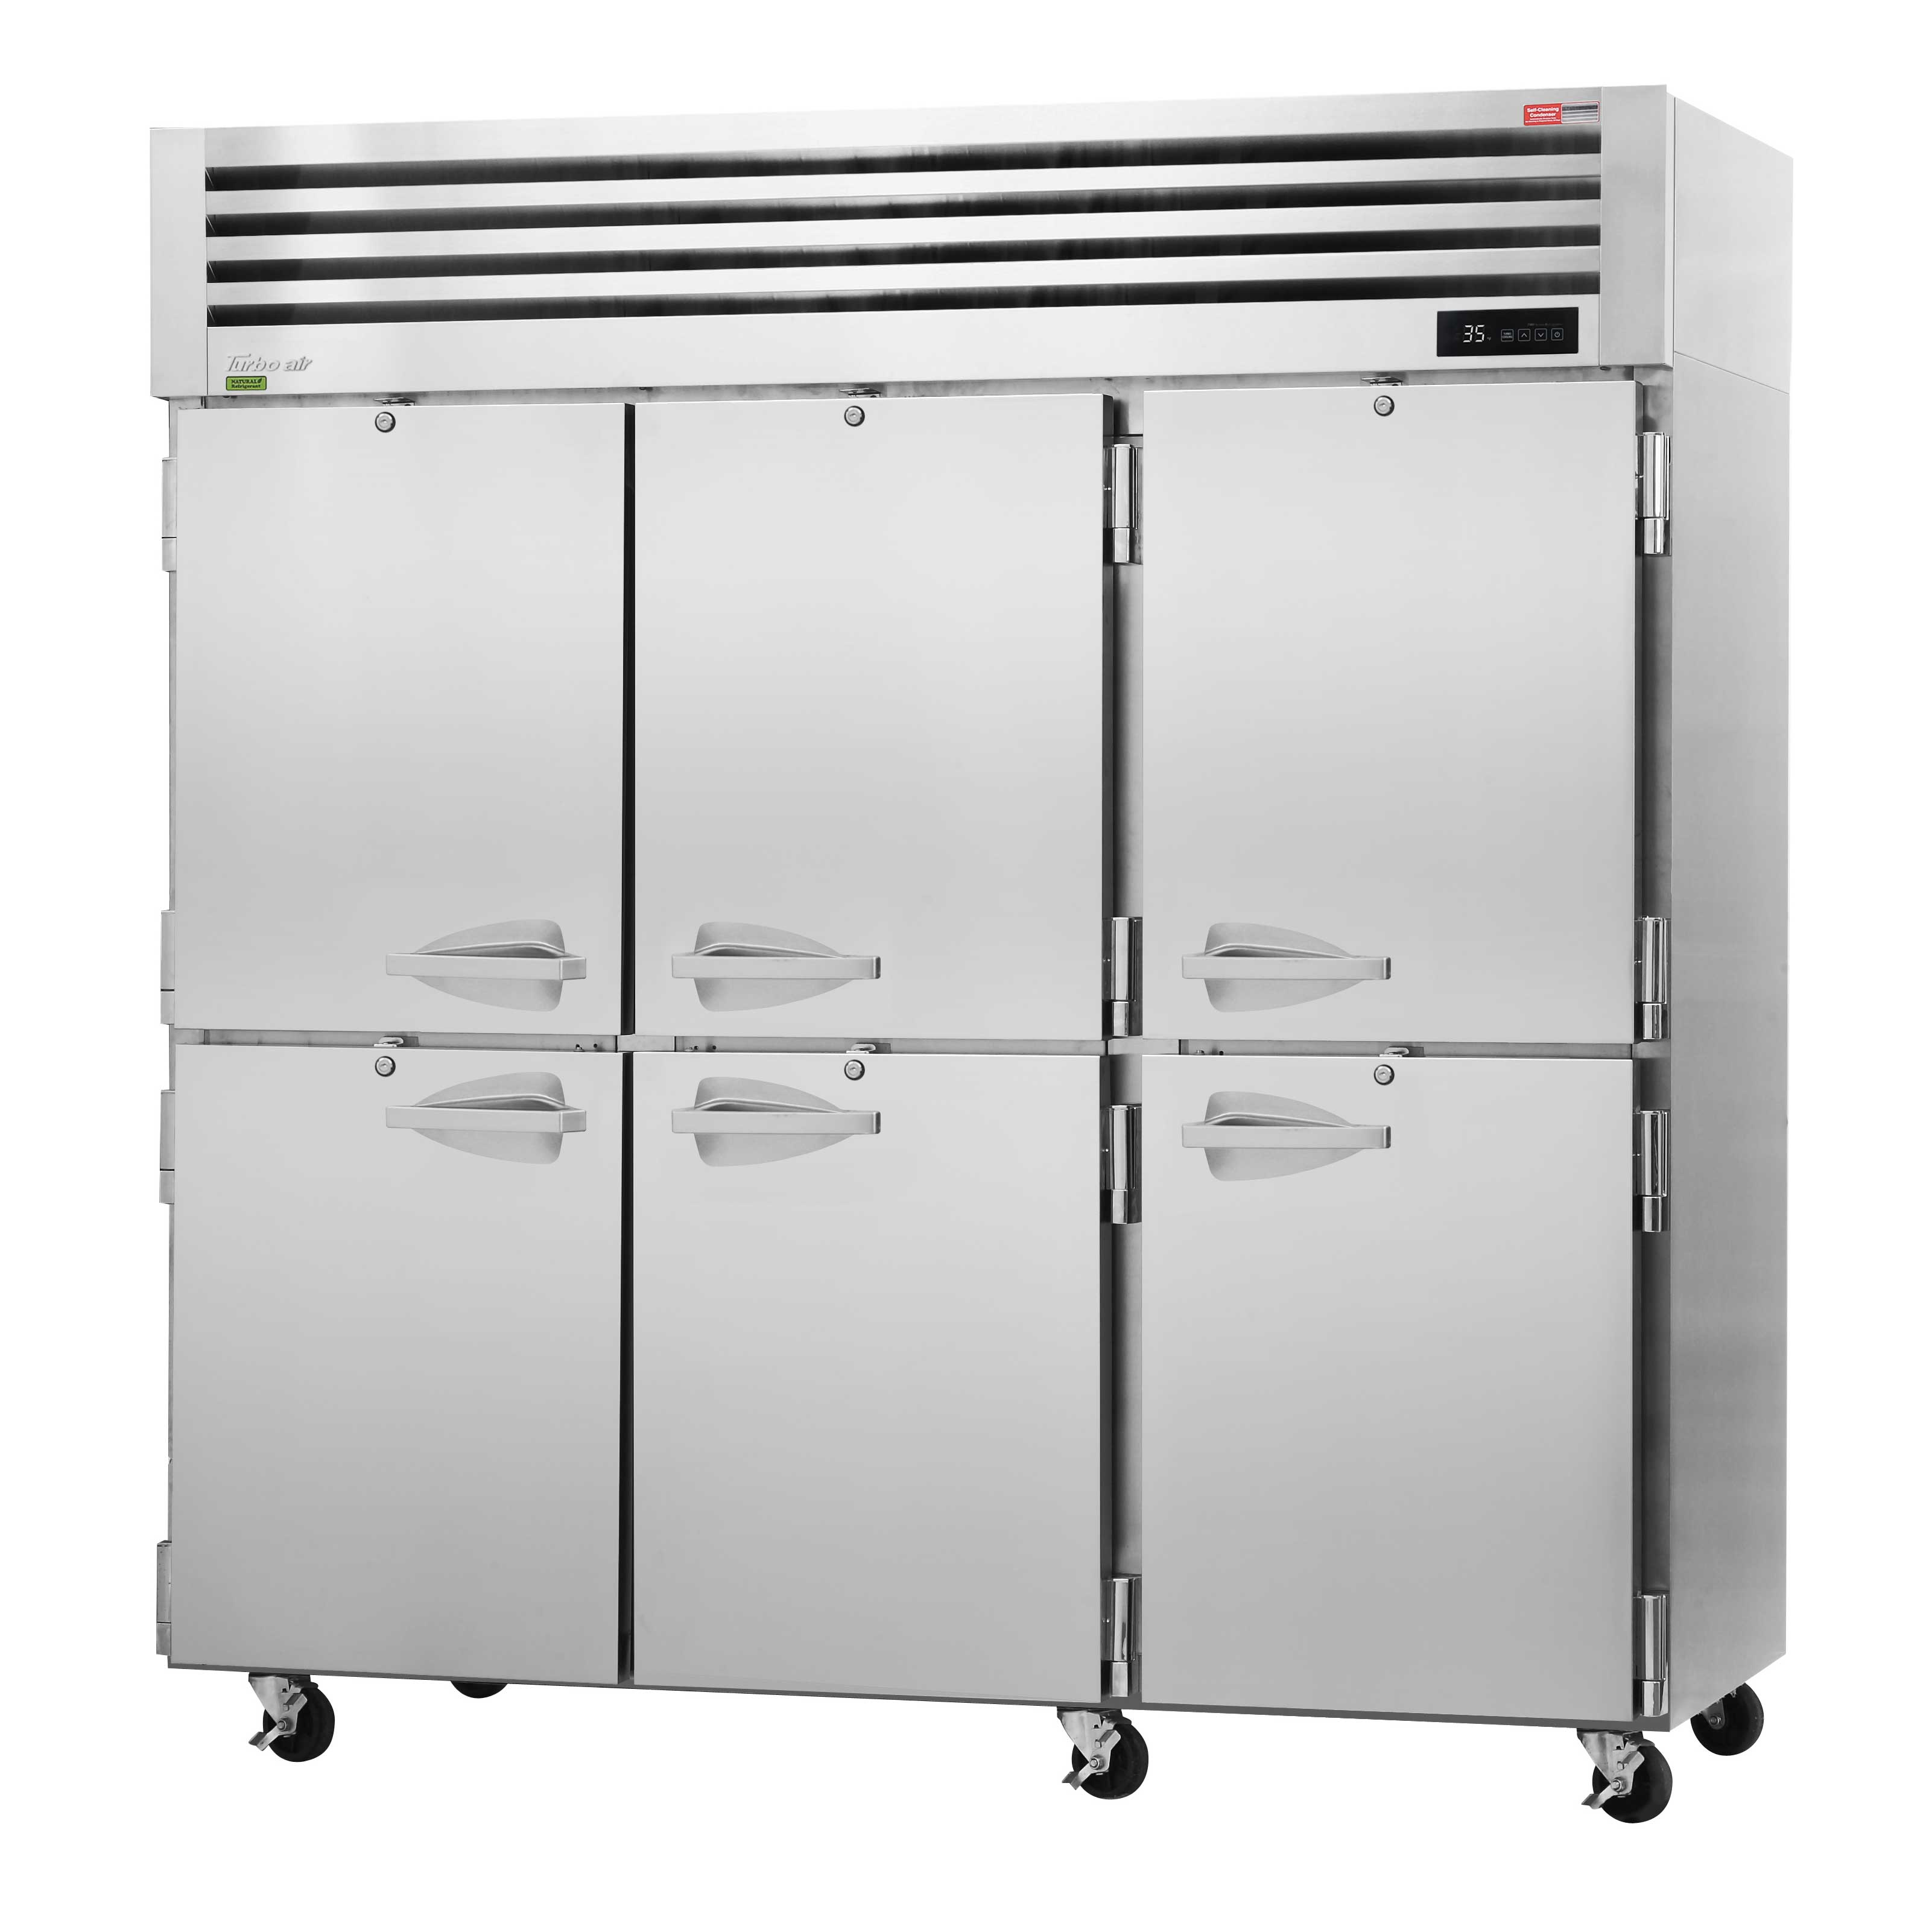 Turbo Air PRO-77-6R refrigerator, reach-in